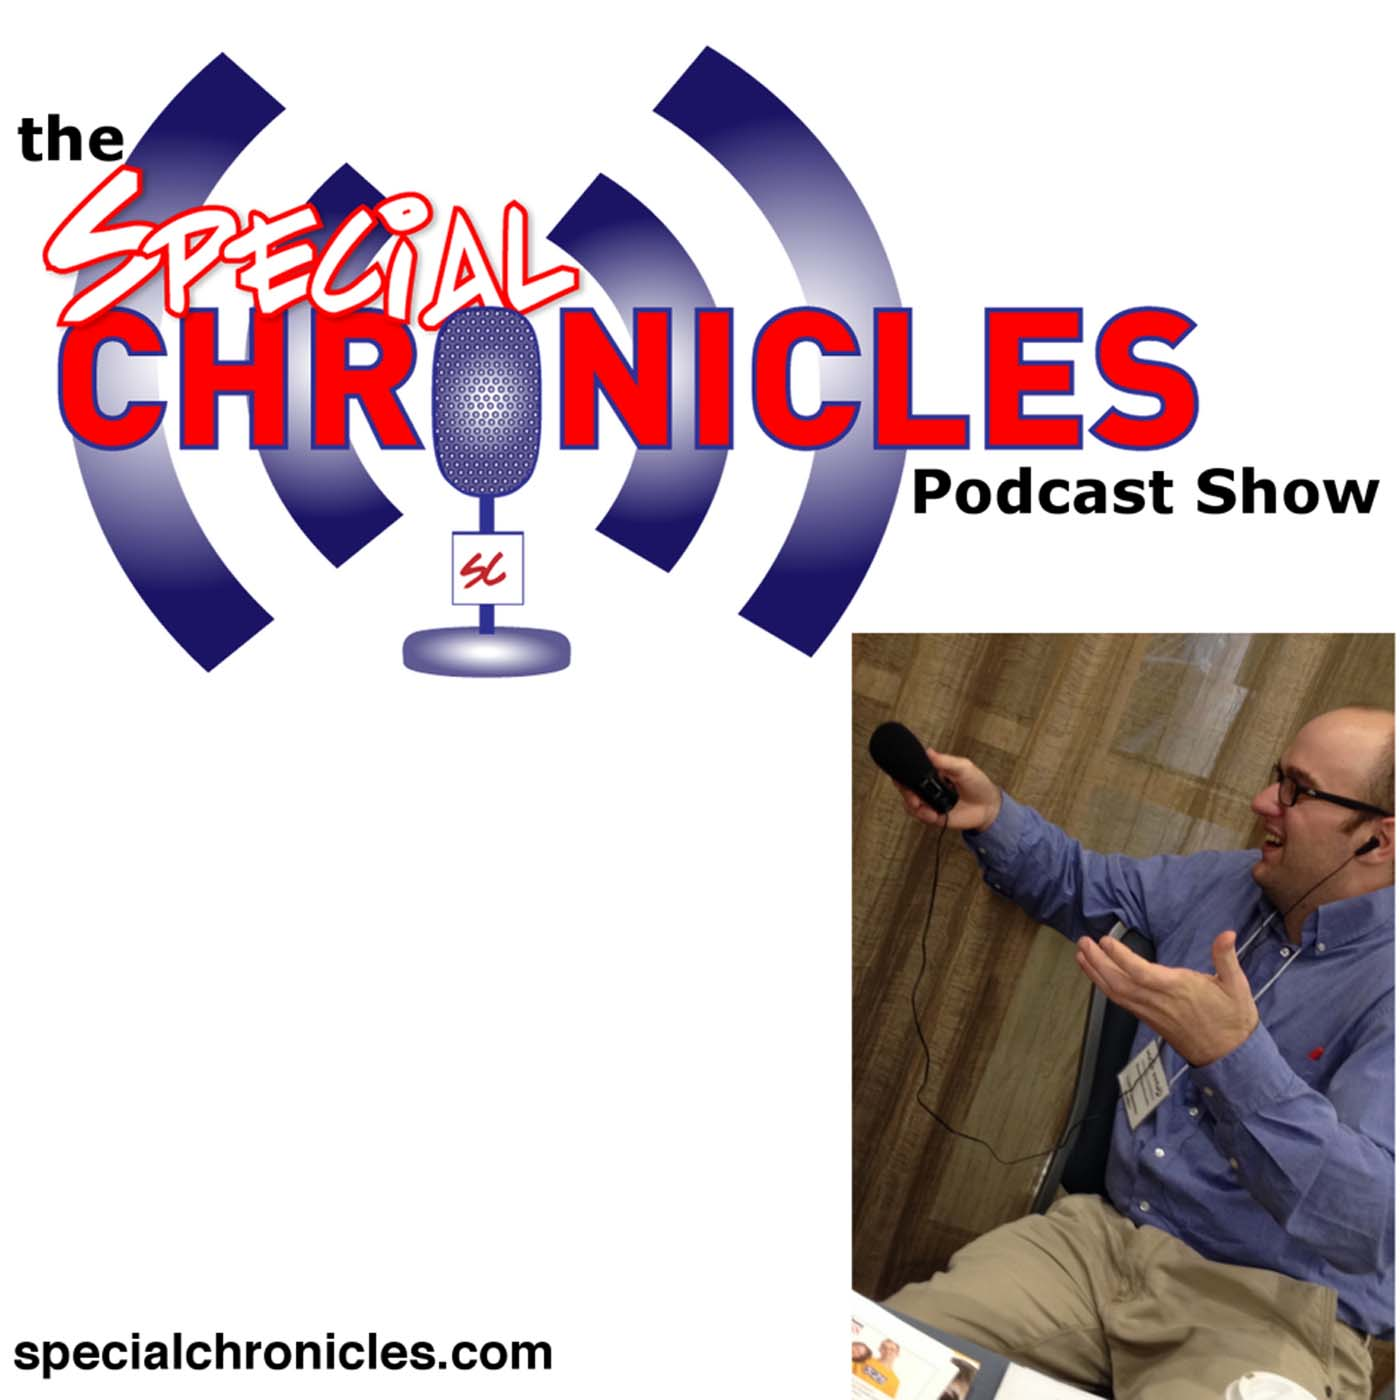 Special Chronicles Podcast Show